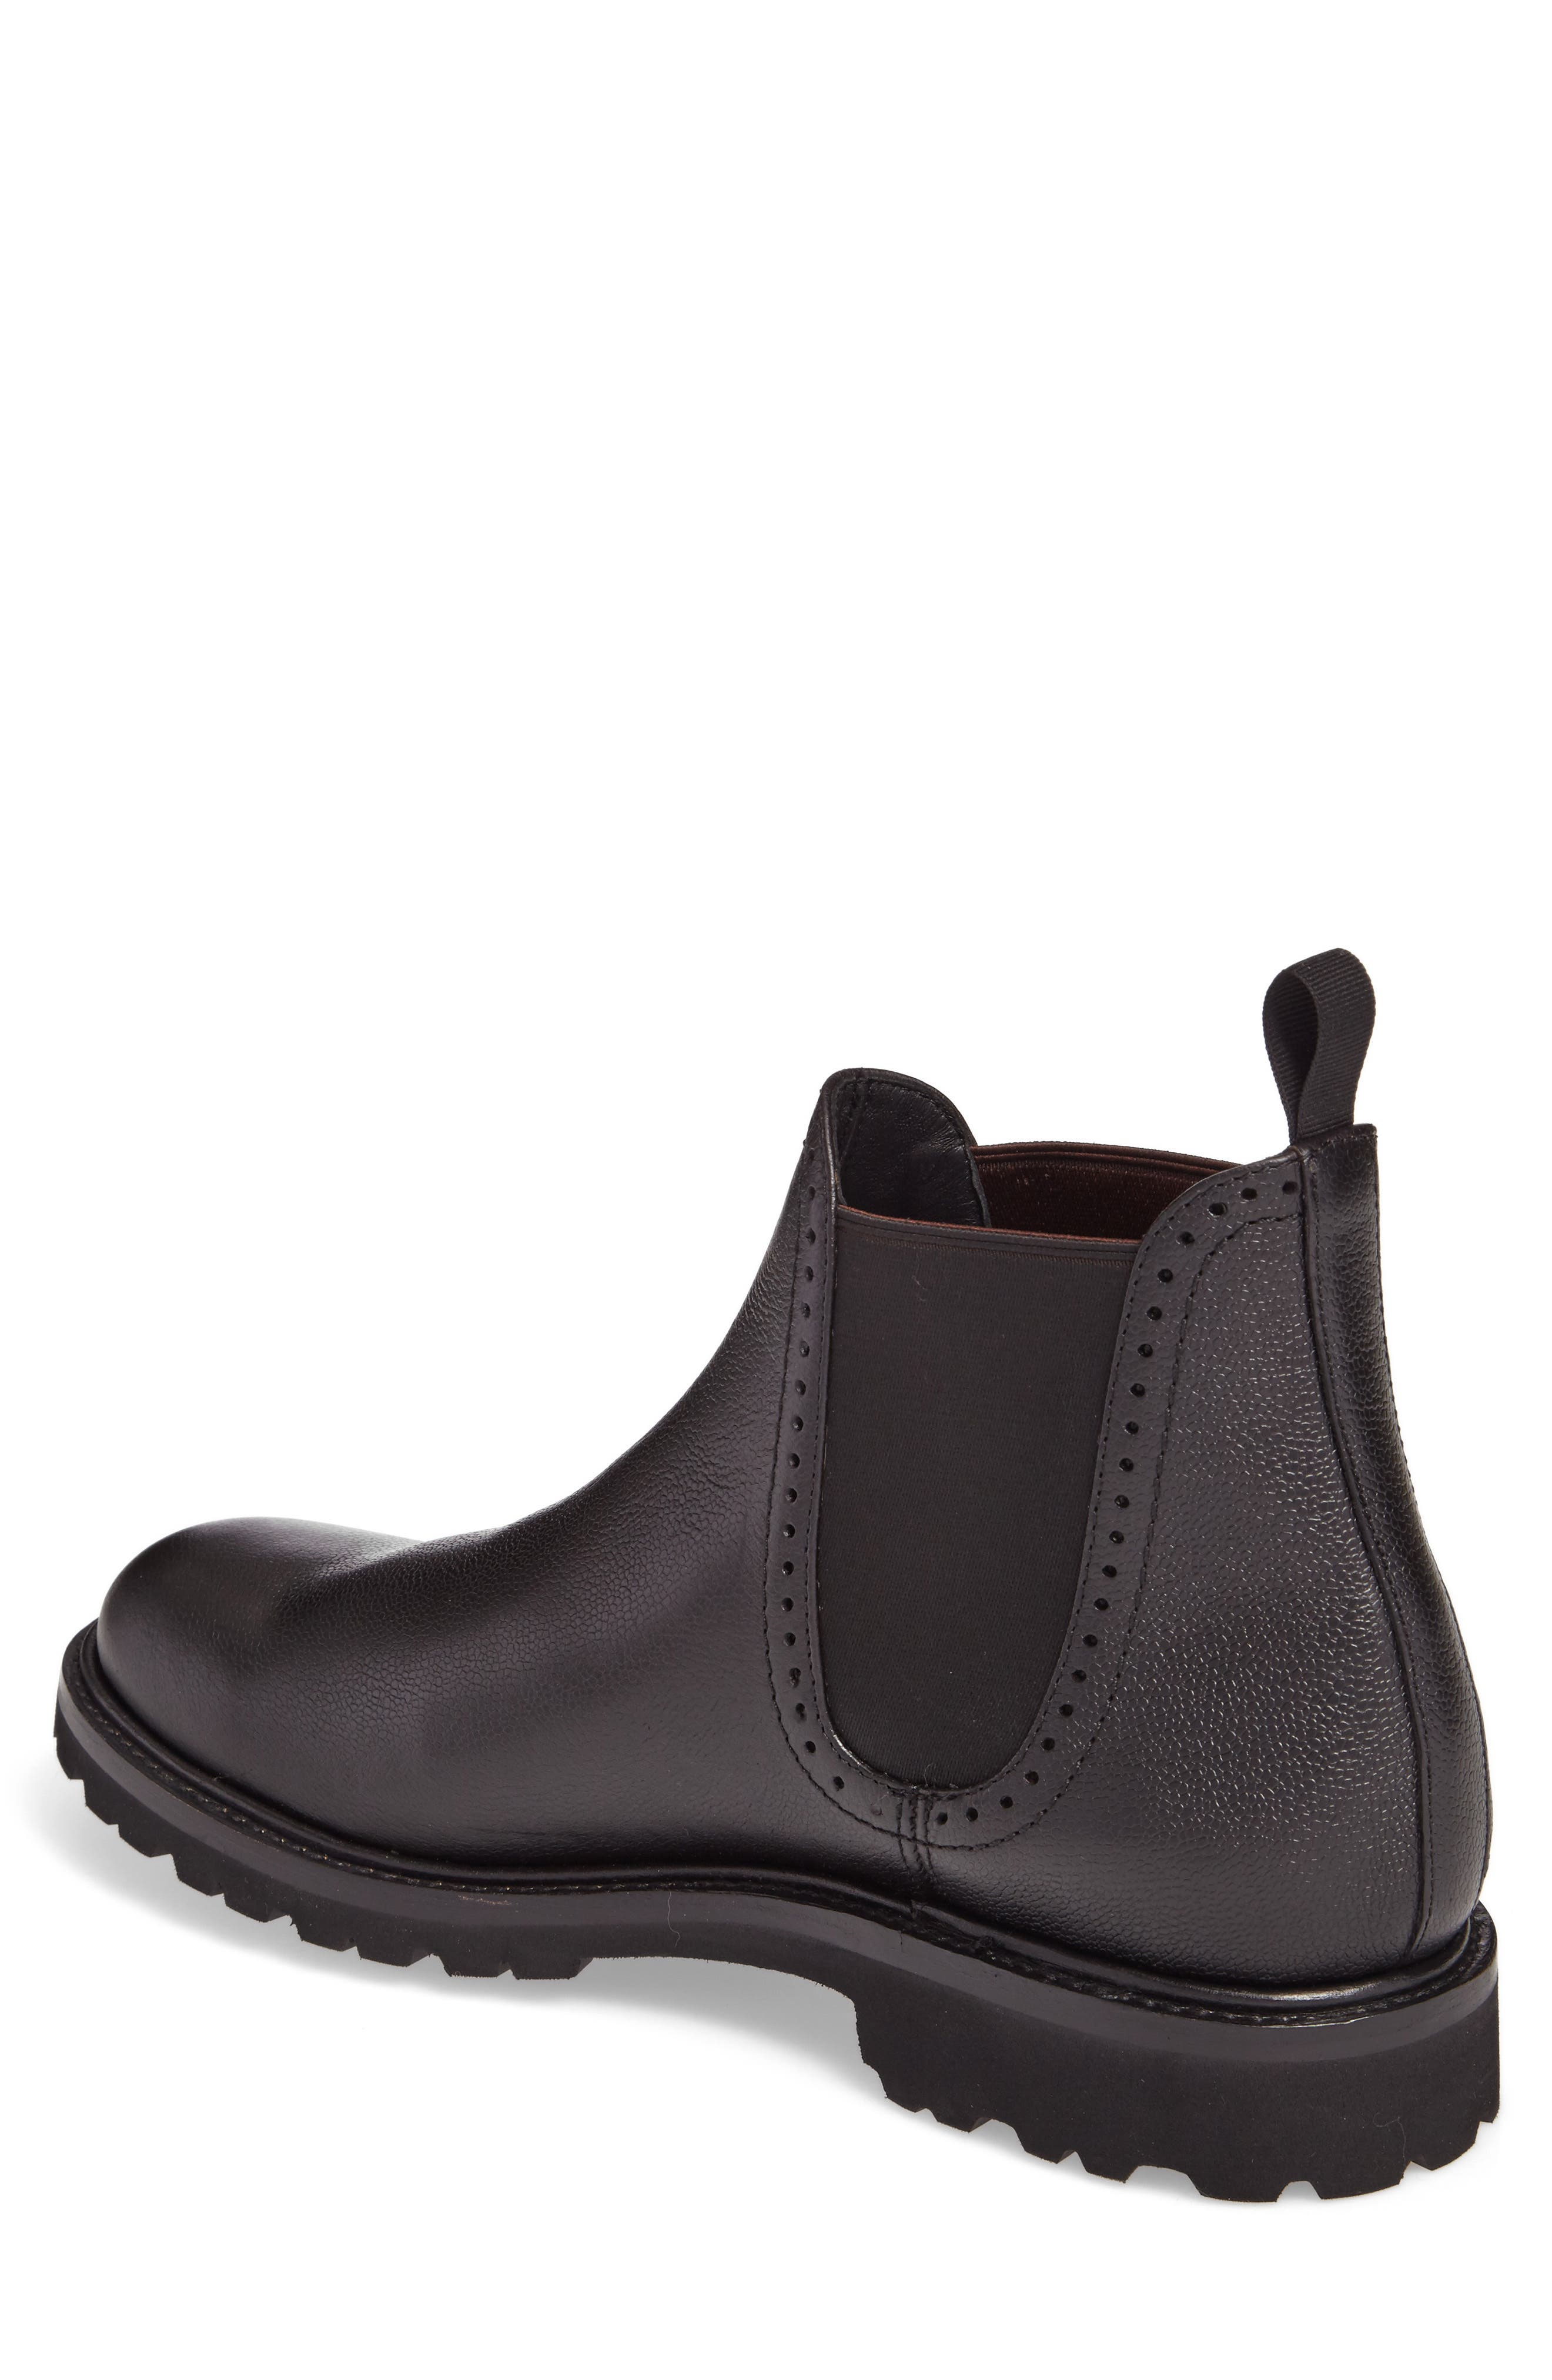 Cromwell Chelsea Boot,                             Alternate thumbnail 2, color,                             001